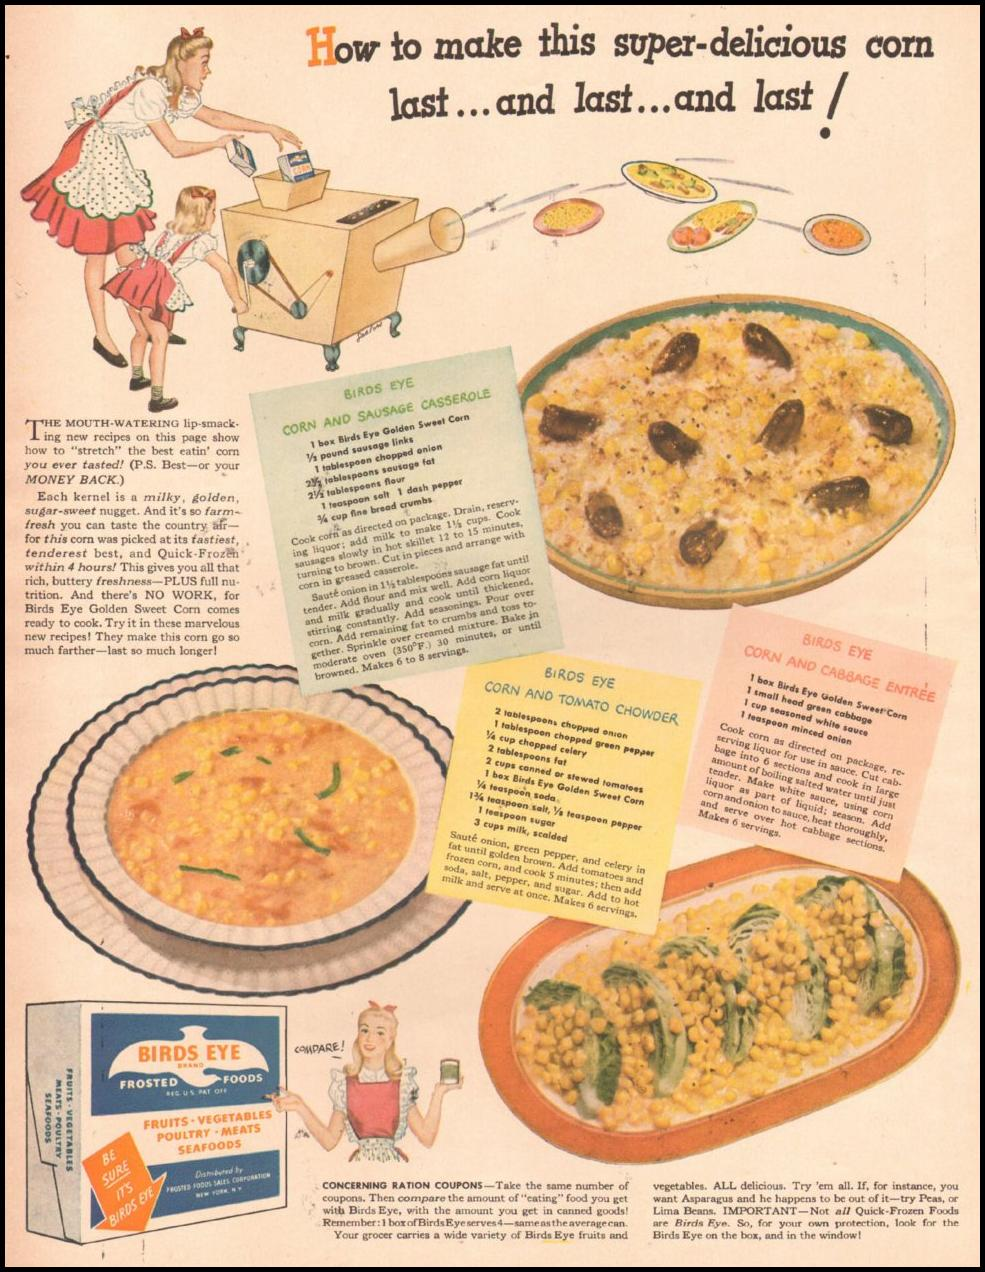 BIRDS EYE FROZEN FOODS LIFE 10/25/1943